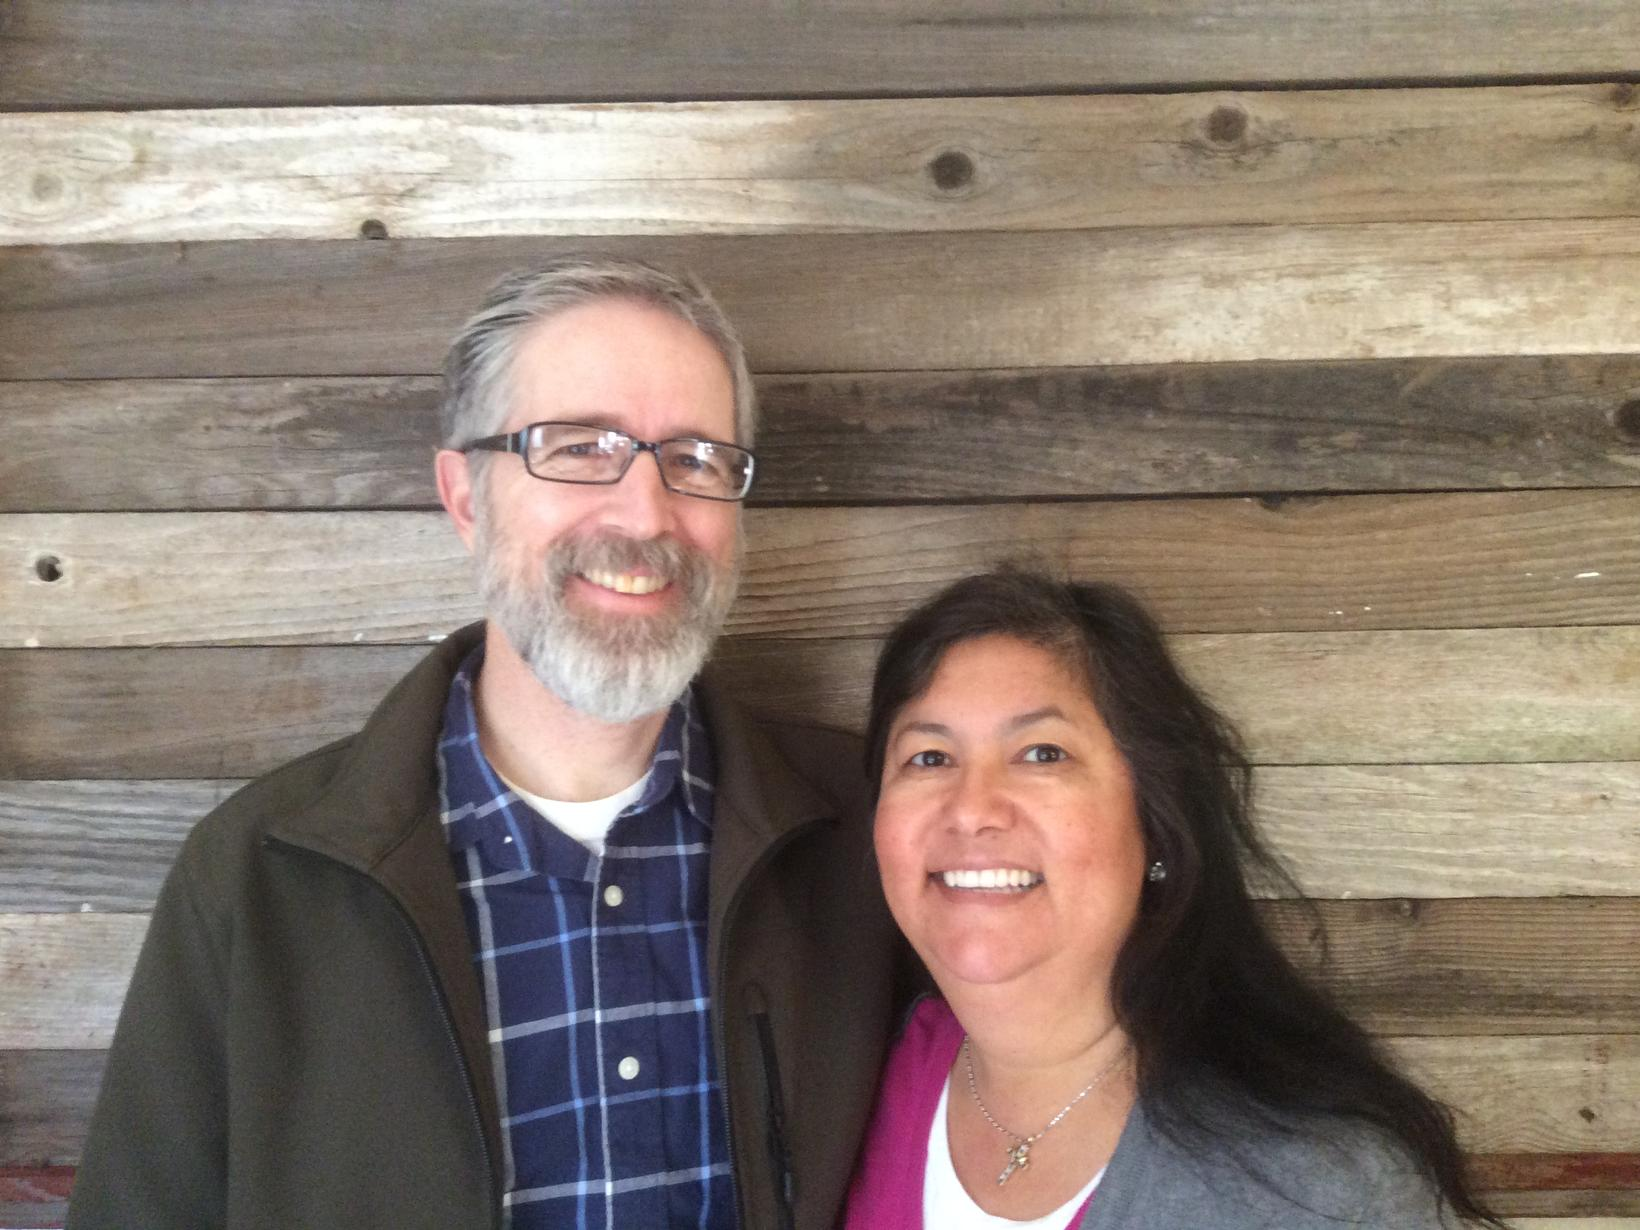 Richard & Maricela from Pleasanton, California, United States